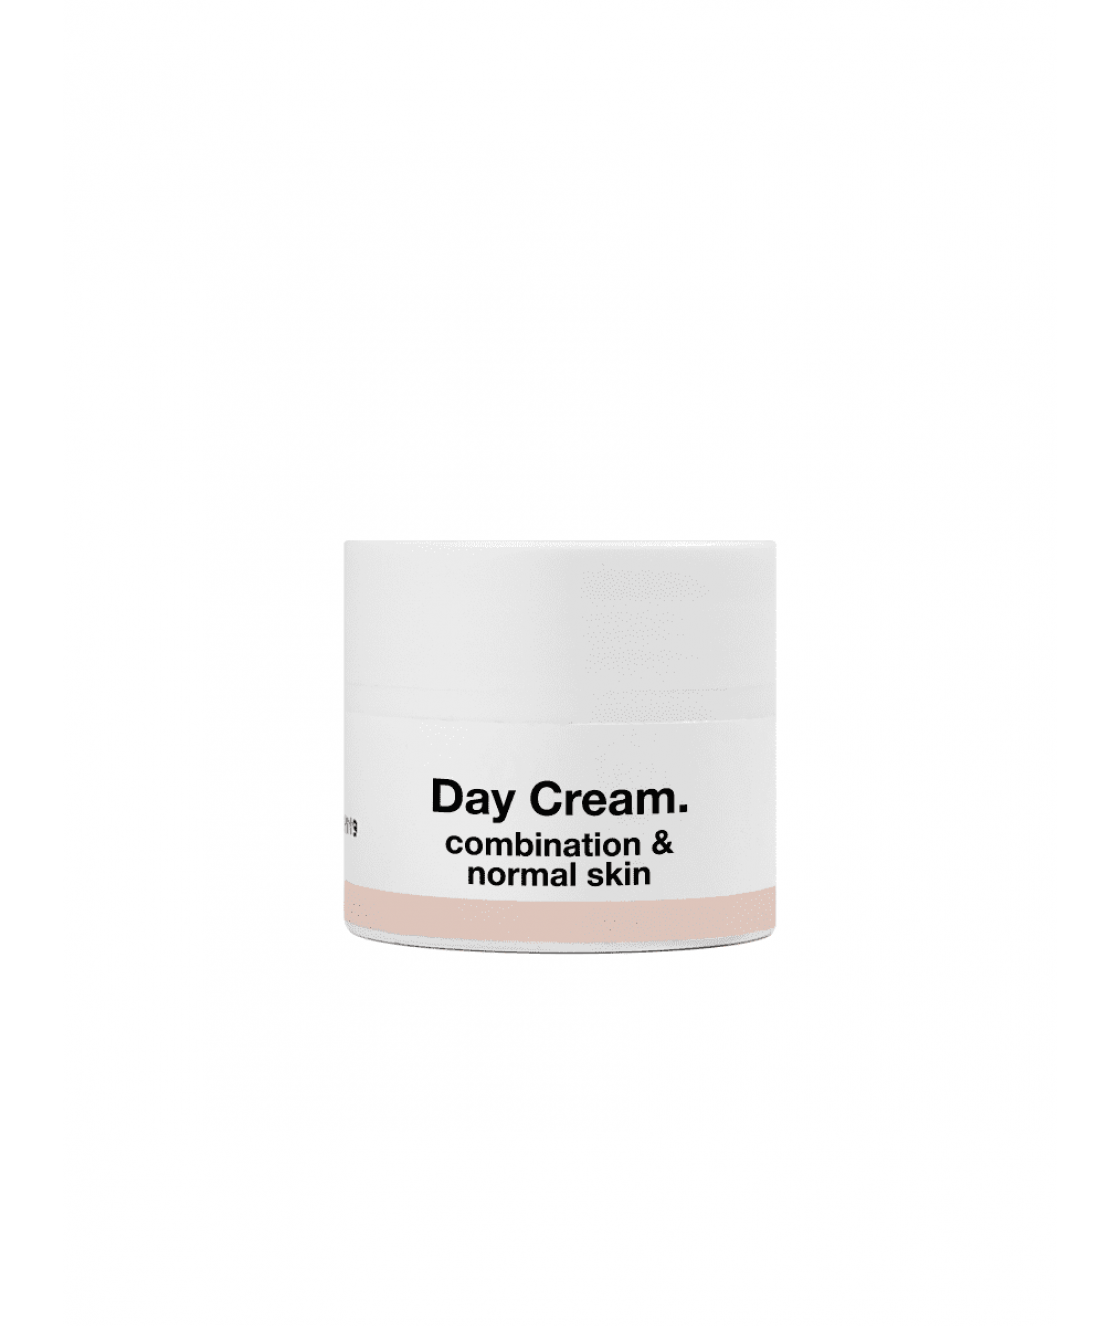 MINI Day Cream for normal and combination skin